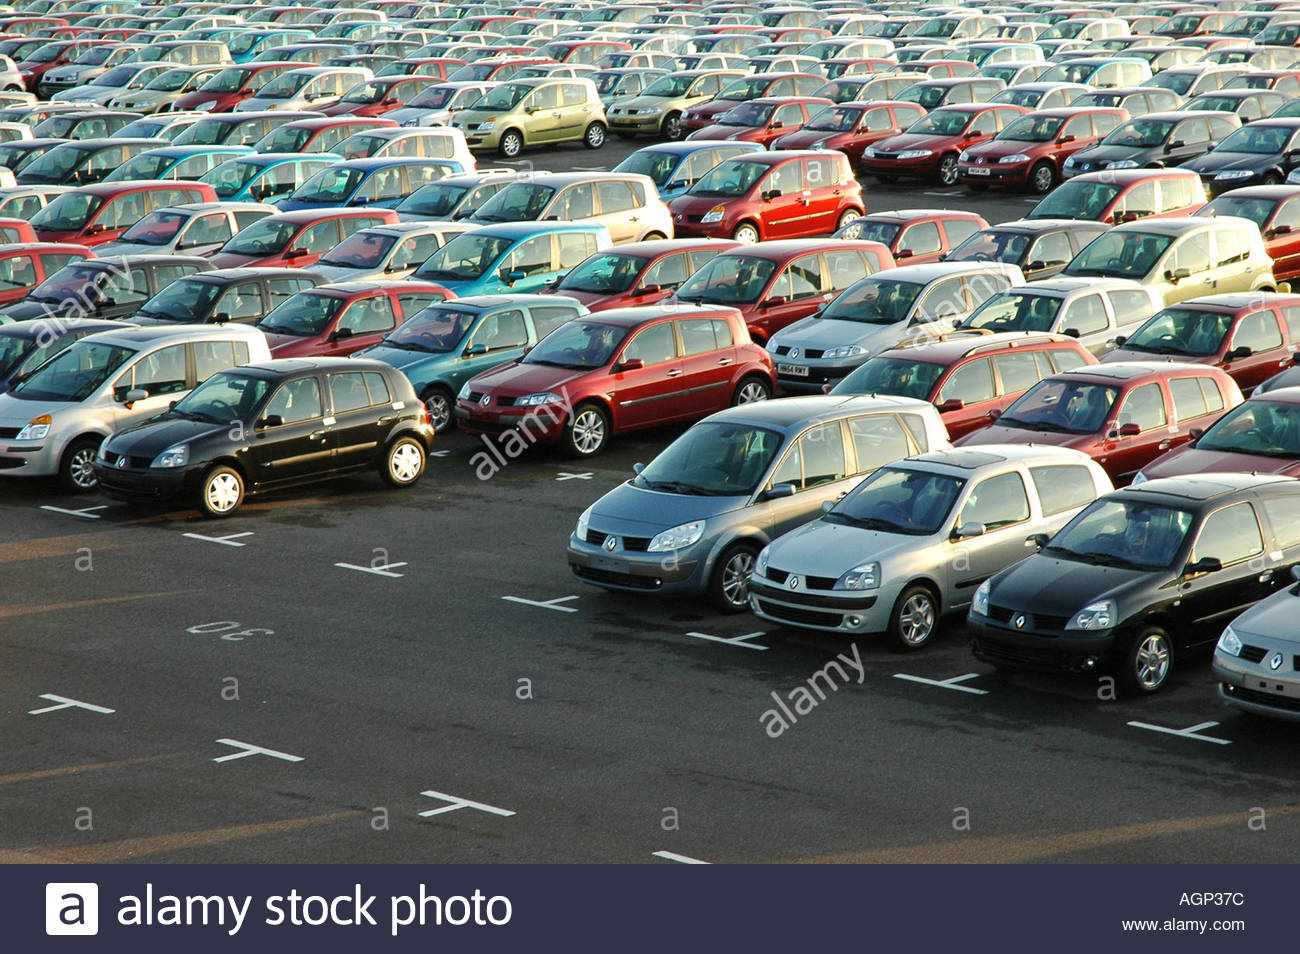 Renault car compound southampton docks hampshire england Southampton motor cars